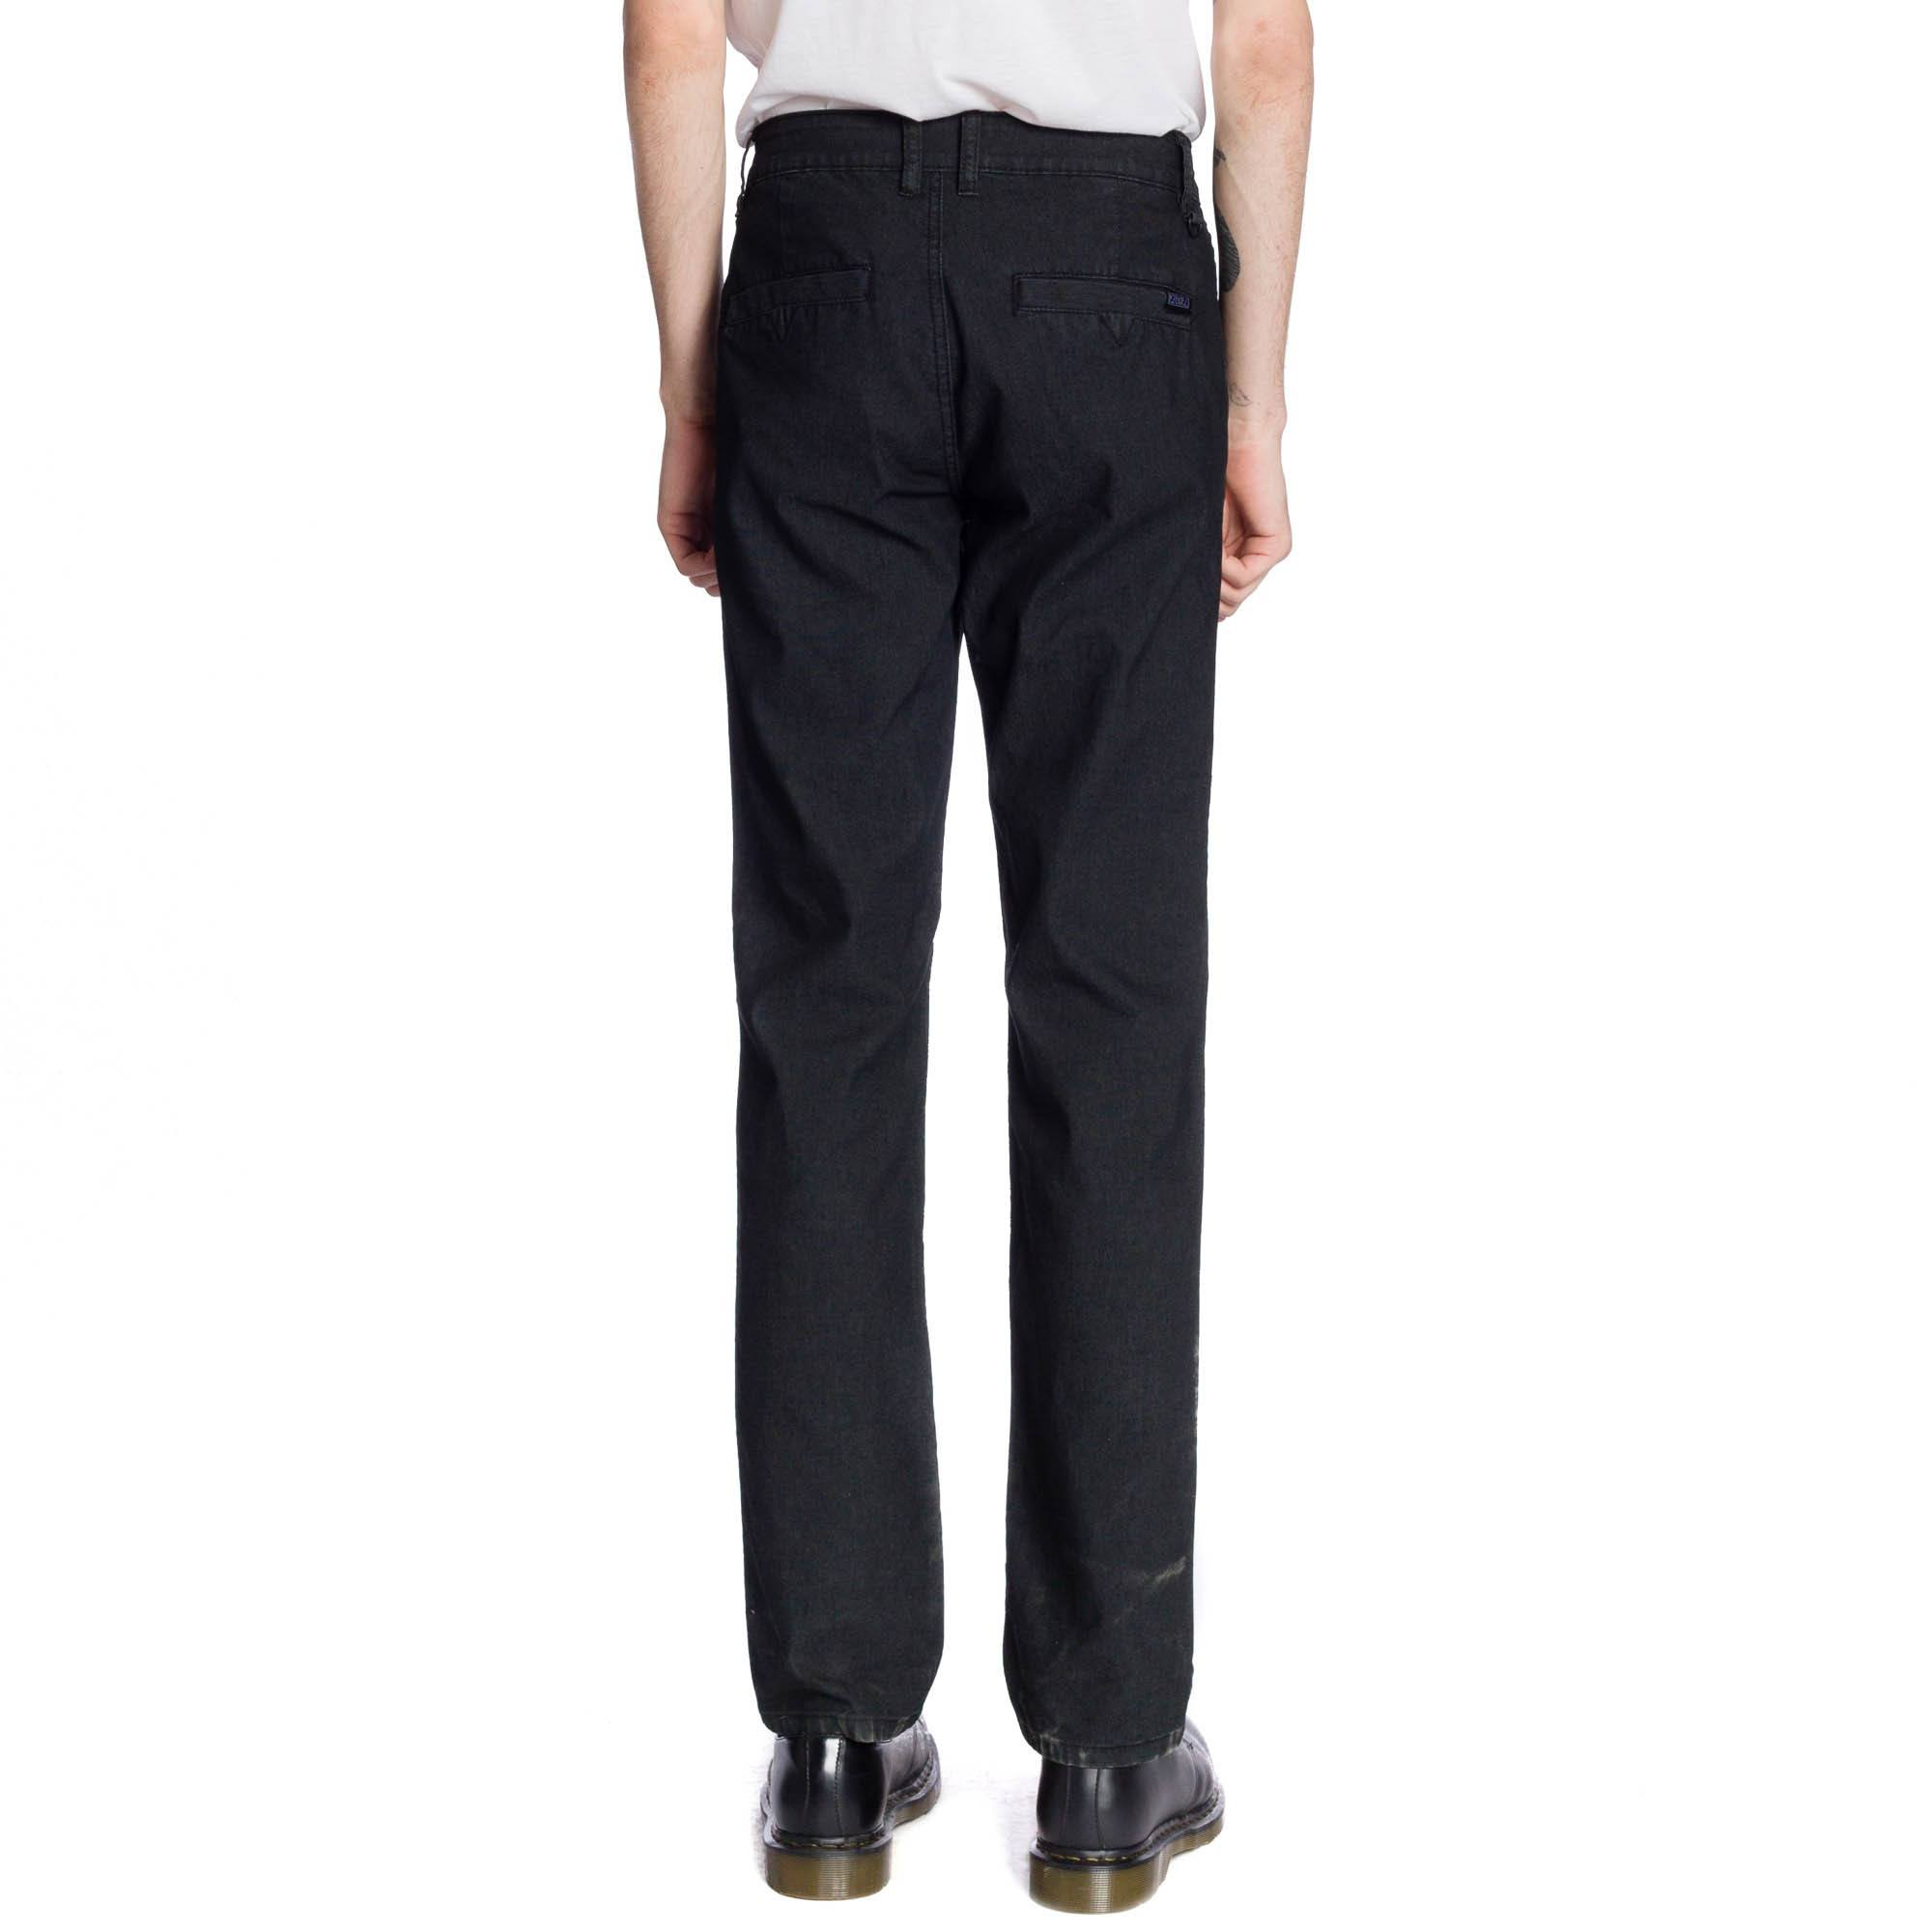 Abbott Pant - Black